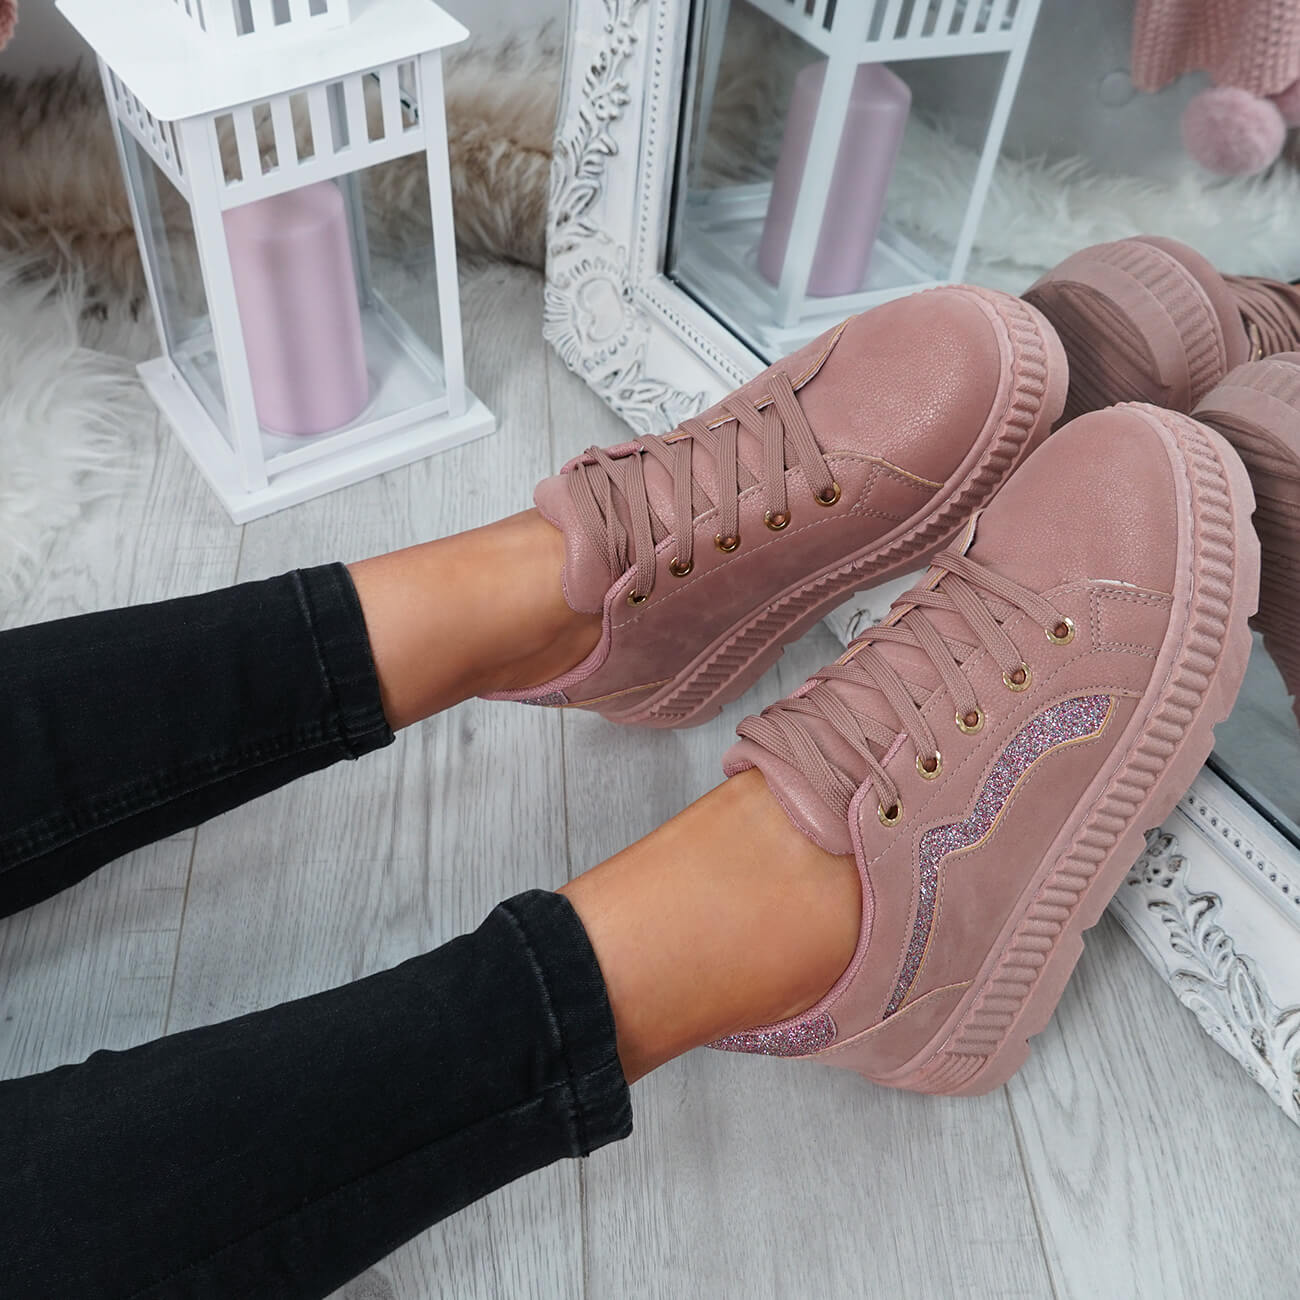 WOMENS-LADIES-LACE-UP-PLATFORM-TRAINERS-PLIMSOLL-SKATE-SNEAKERS-SHOES-SIZE thumbnail 25